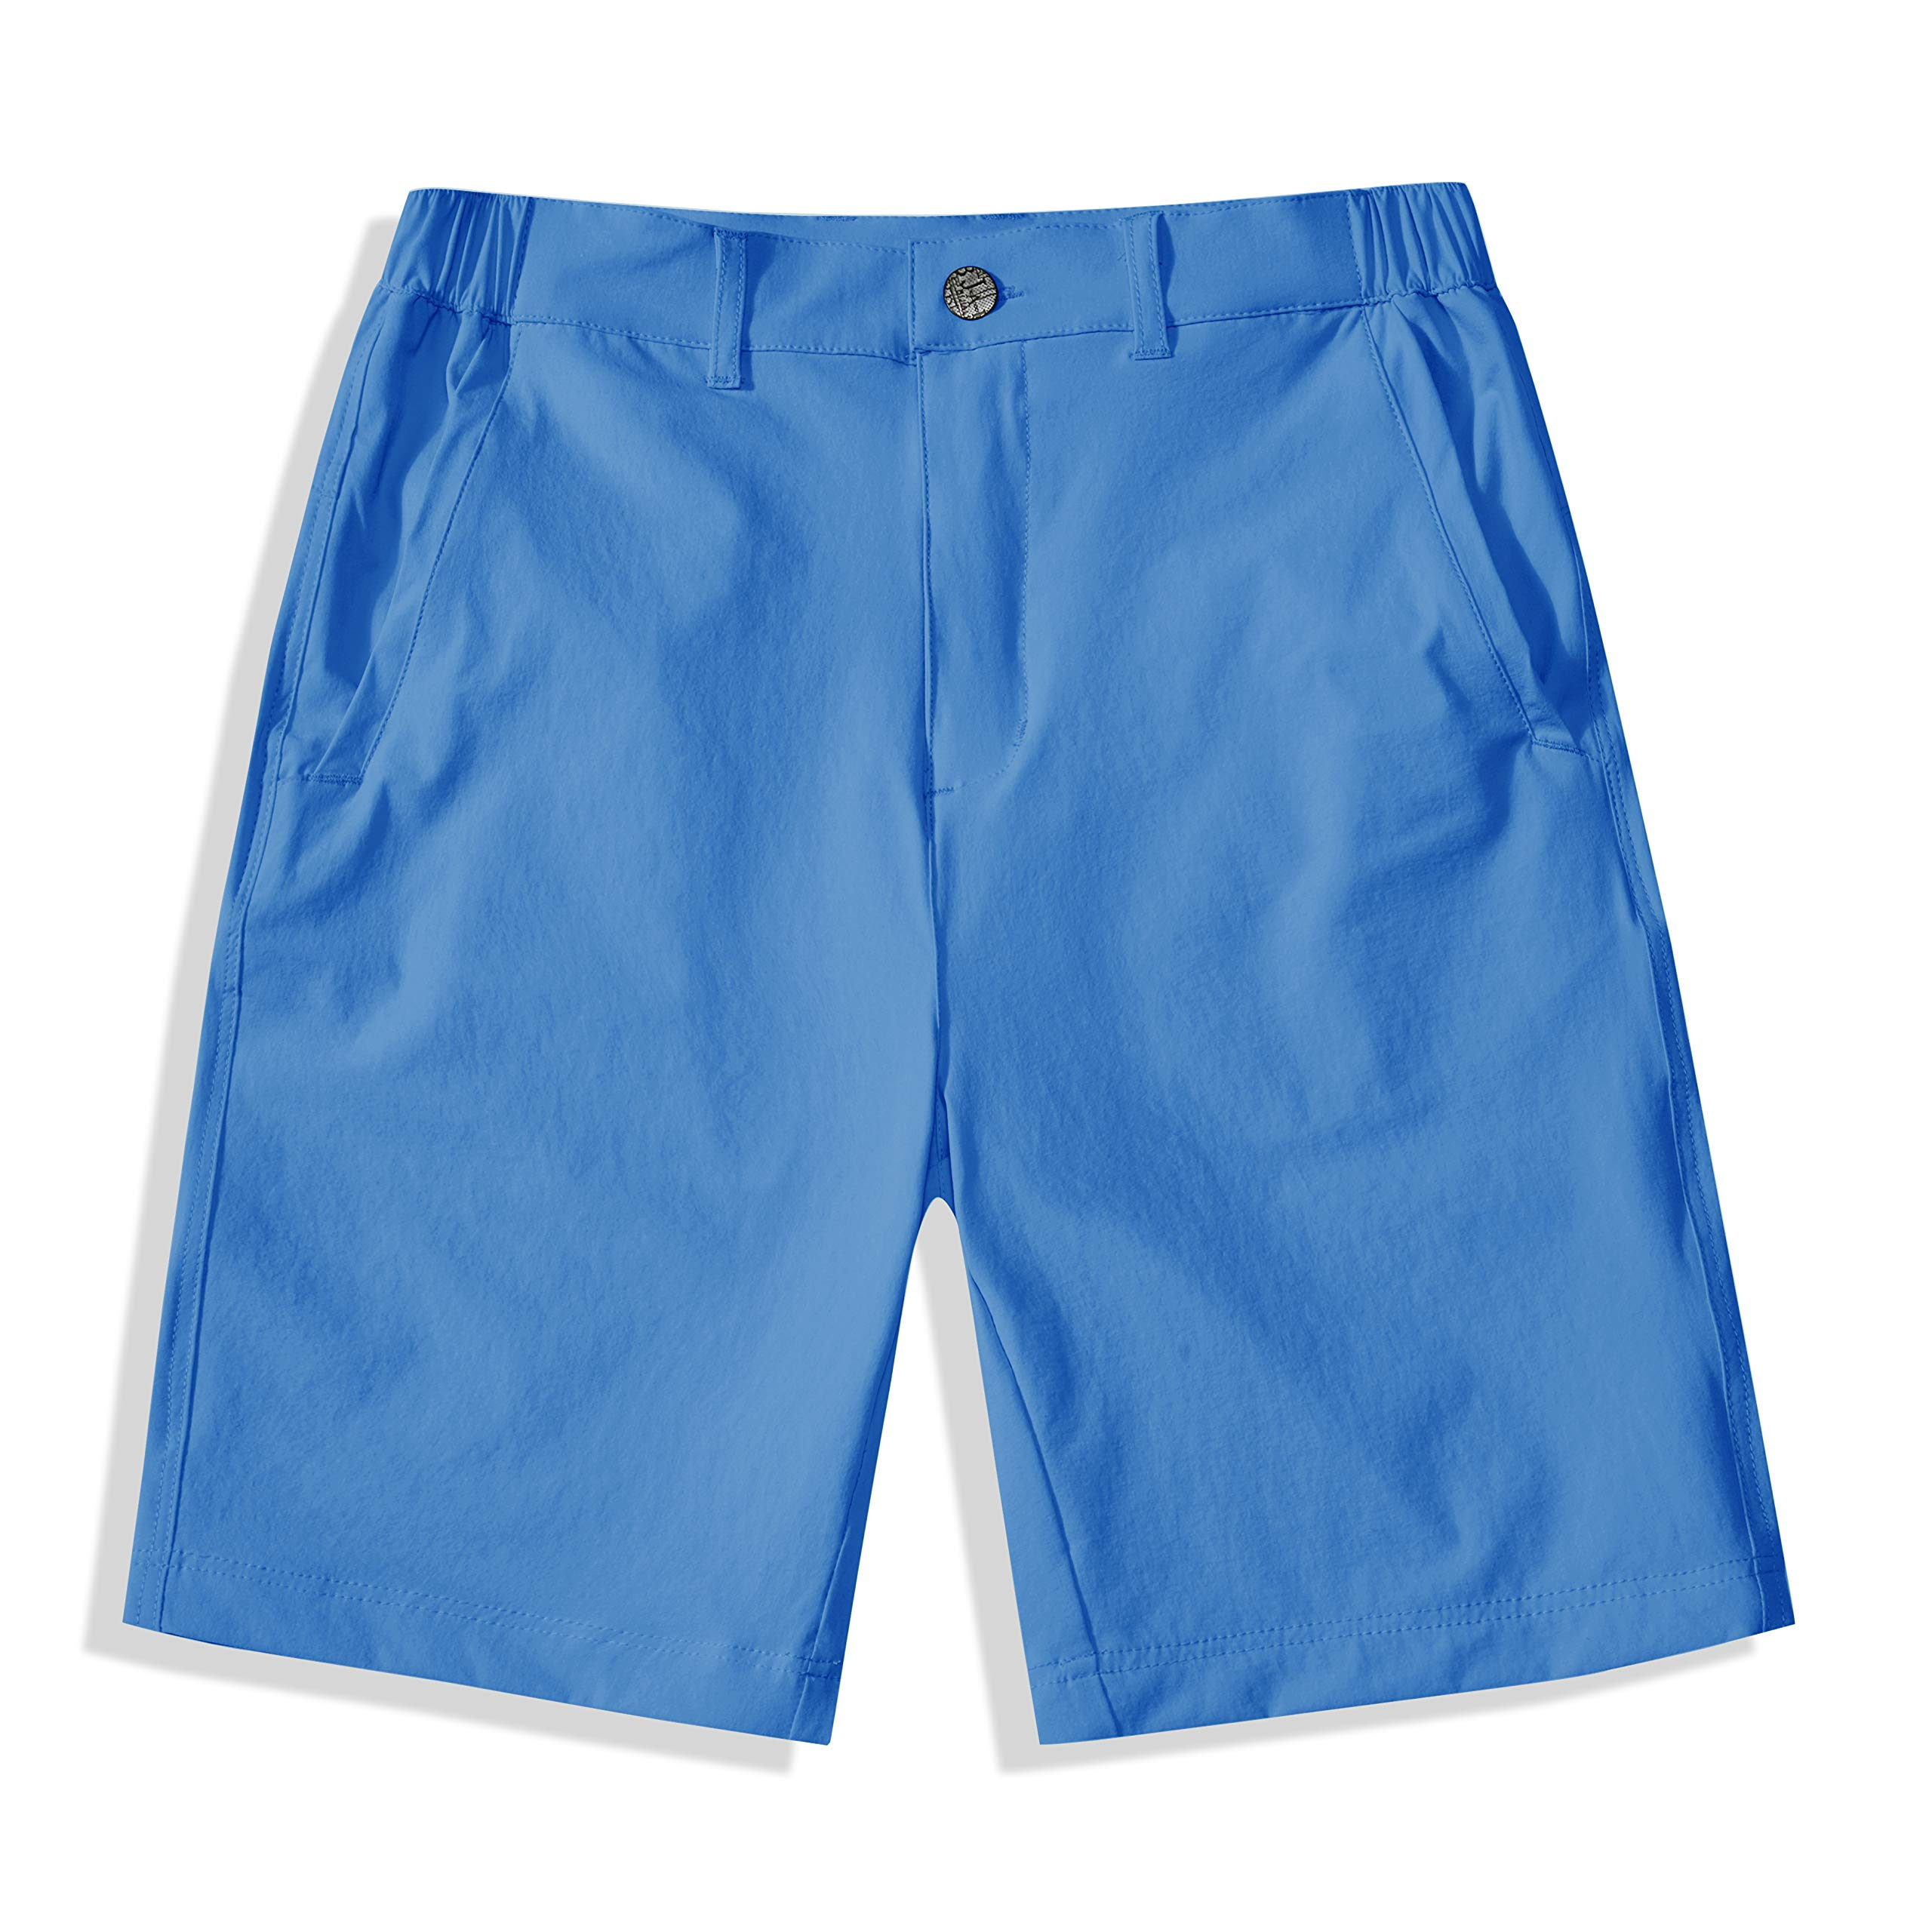 BASADINA Boys Shorts Quick Dry Outdoor Casual Shorts with Moisture Wicking Solid Blue by BASADINA